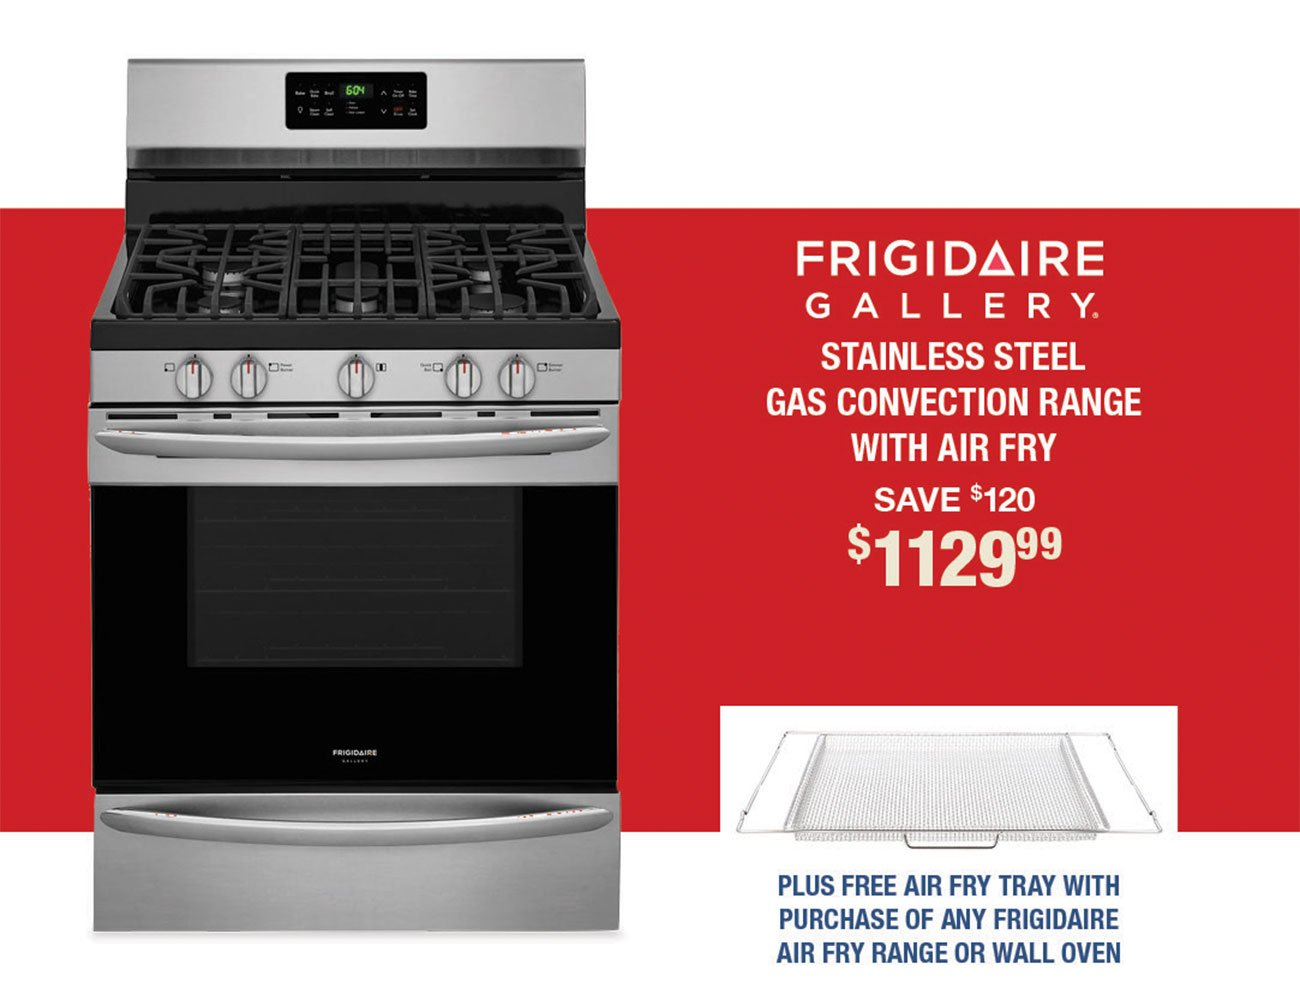 Frigidaire-Stainless-Gas-Range-UIRV